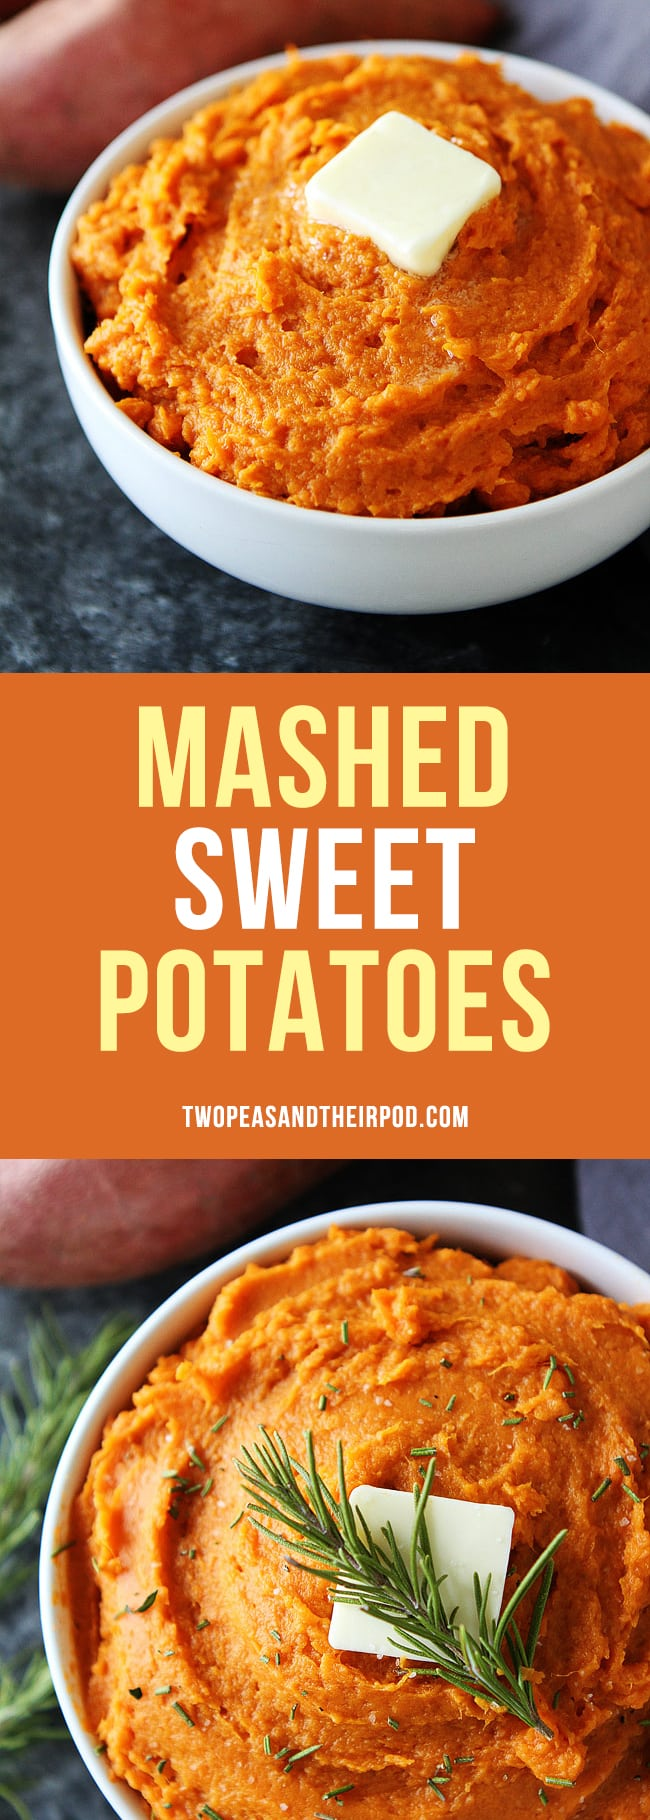 The BEST mashed sweet potatoes! They are the perfect holiday side dish! #sweetpotatoes #Thanksgiving #holidays